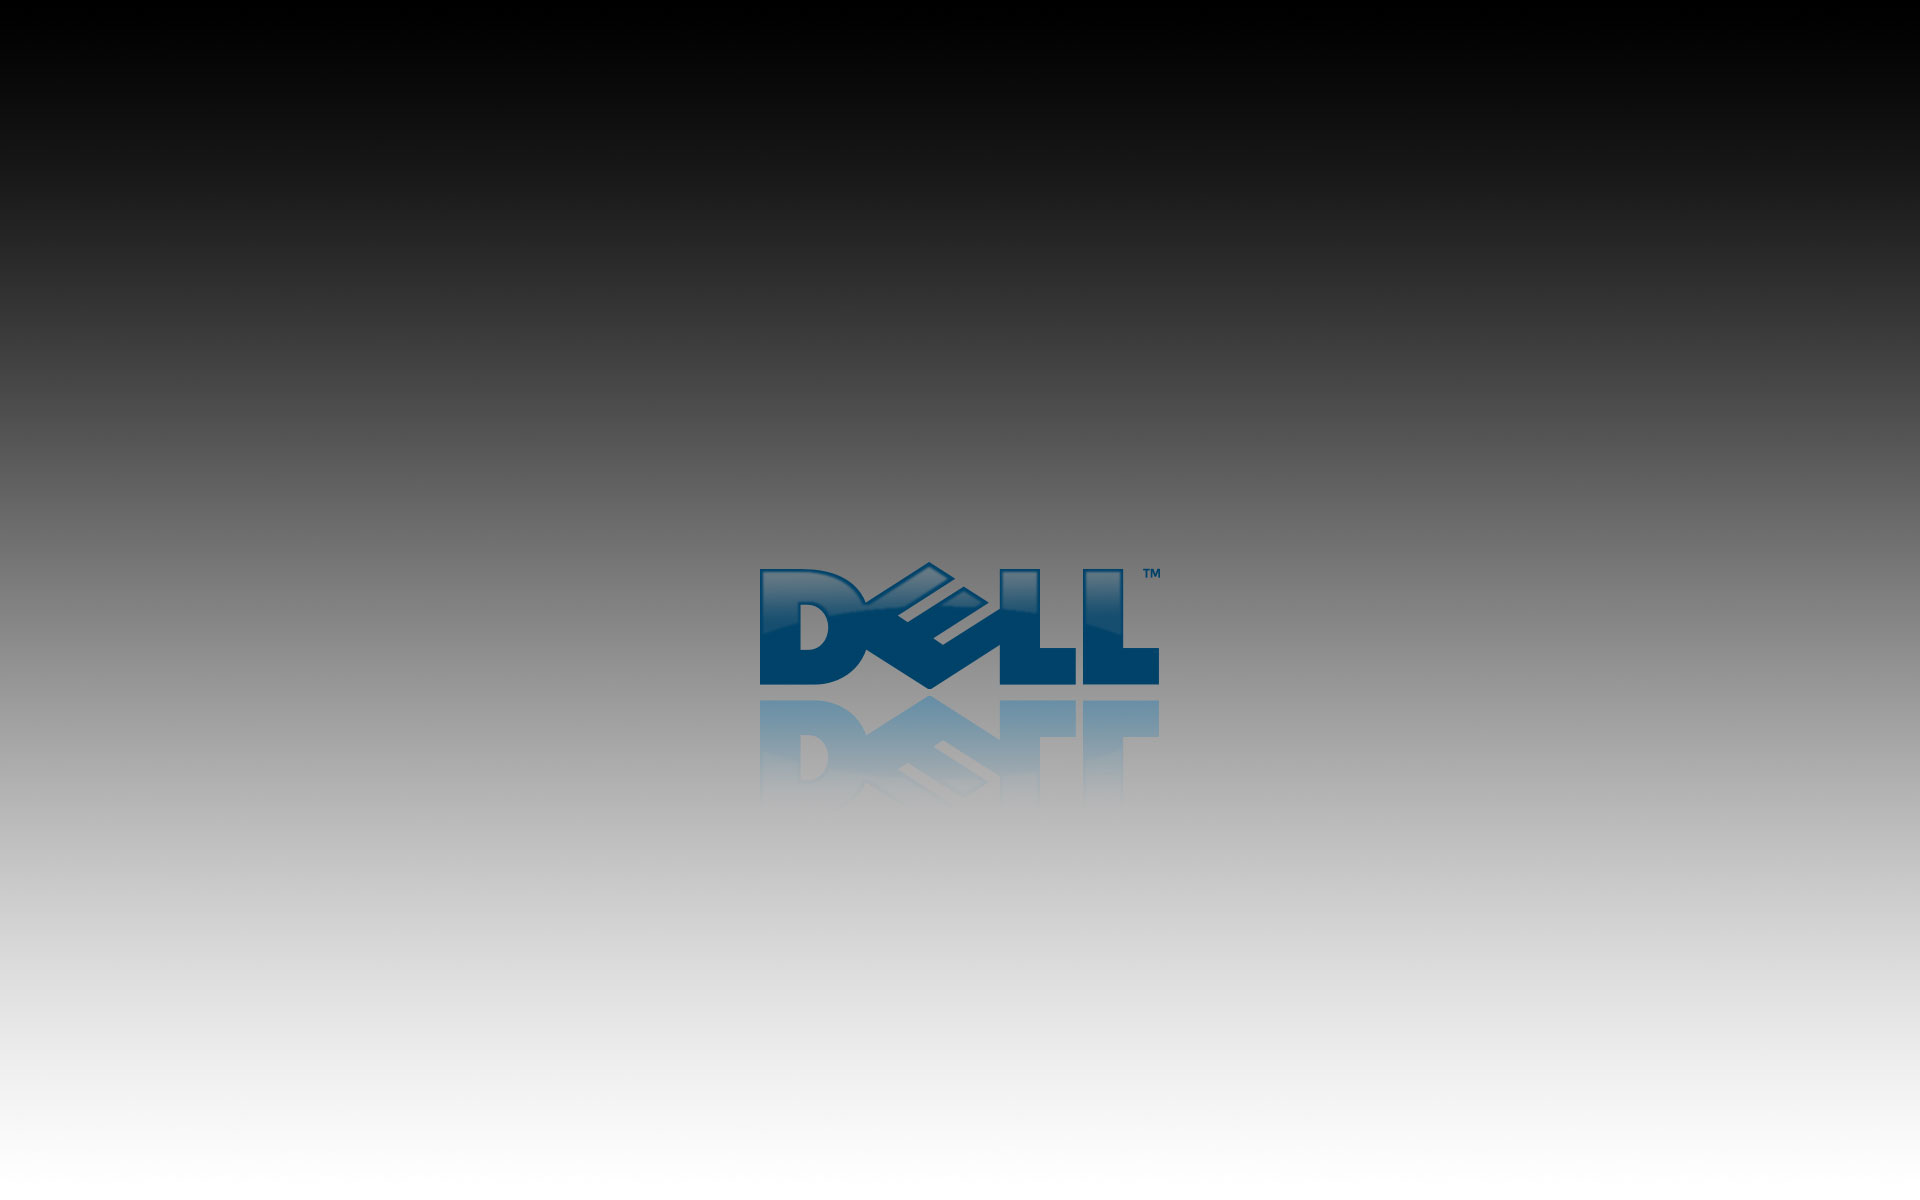 dell gradient computer wallpaper 58778